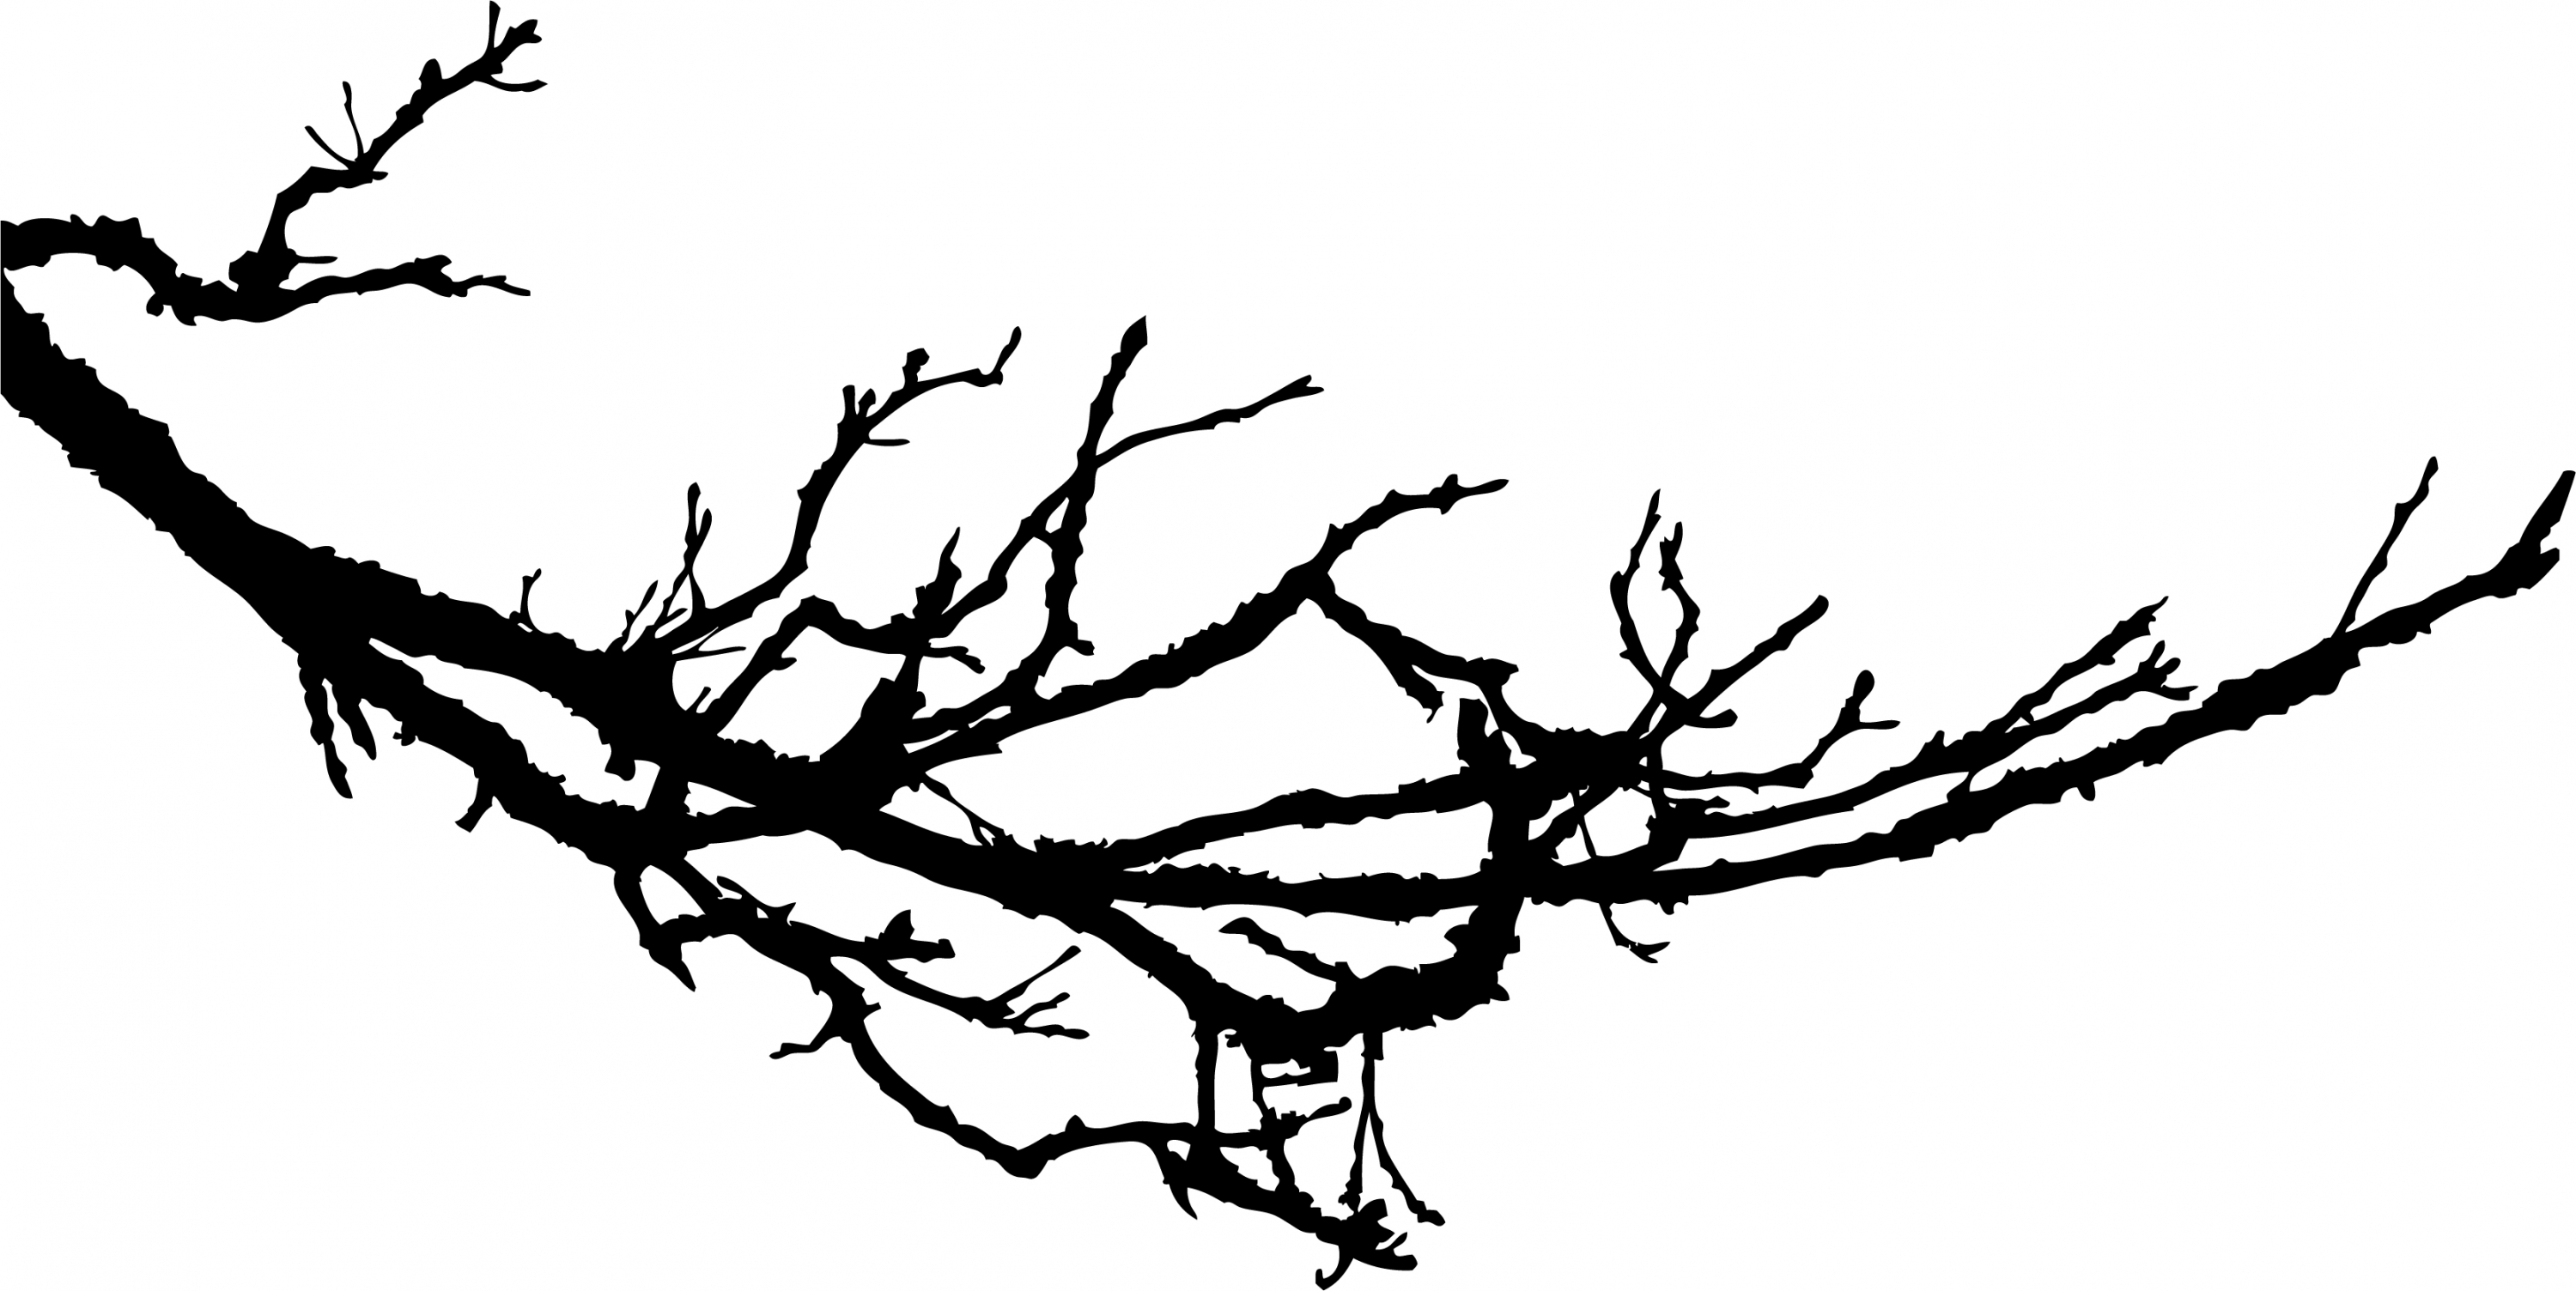 Tree silhouette images library. Branch clipart sanga